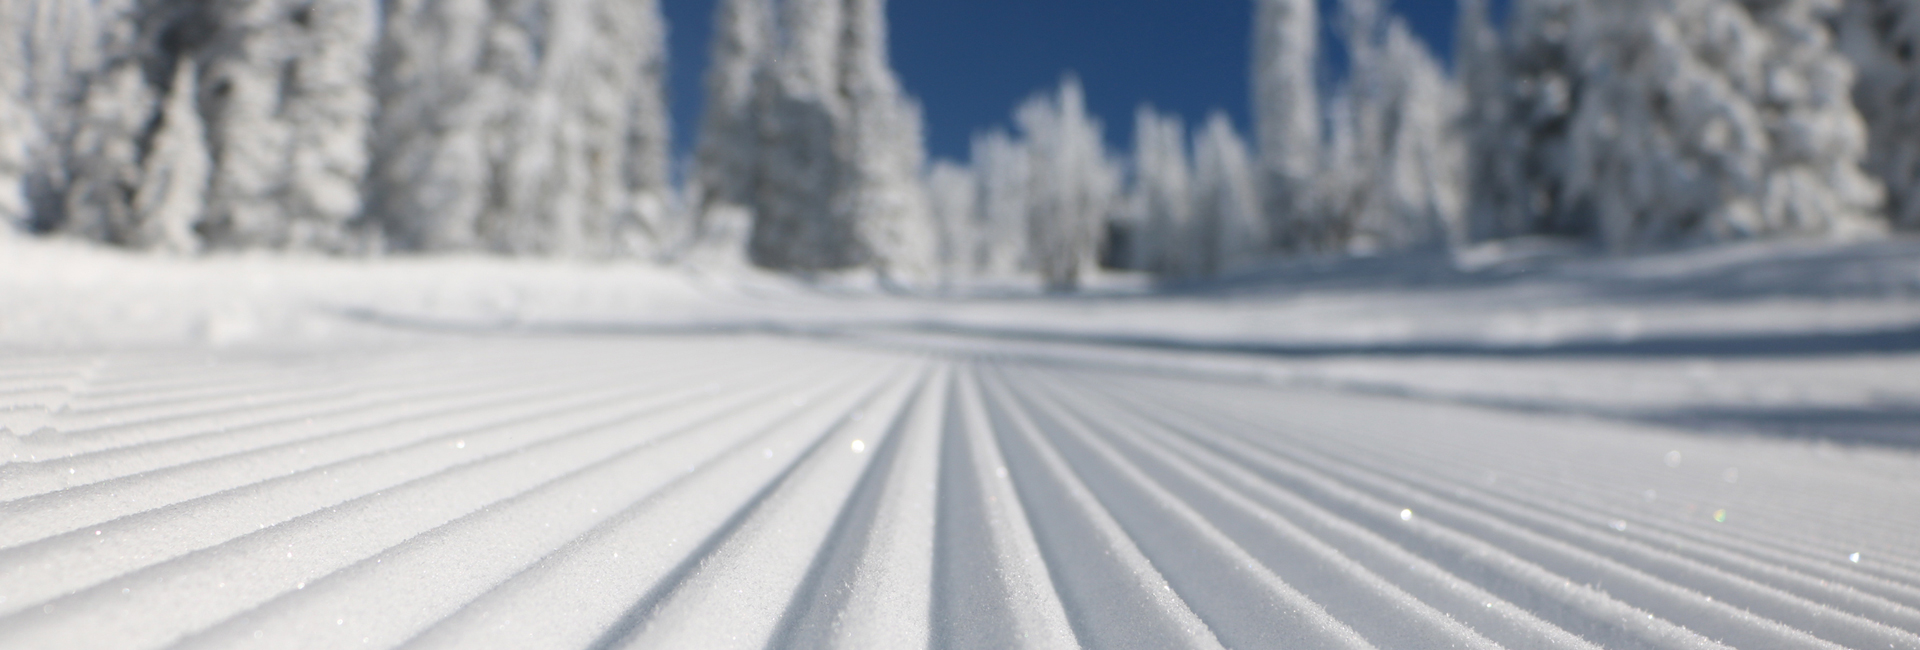 [satisfy]Covid-19 Update[/satisfy] BRUNDAGE MOUNTAIN IS CLOSED